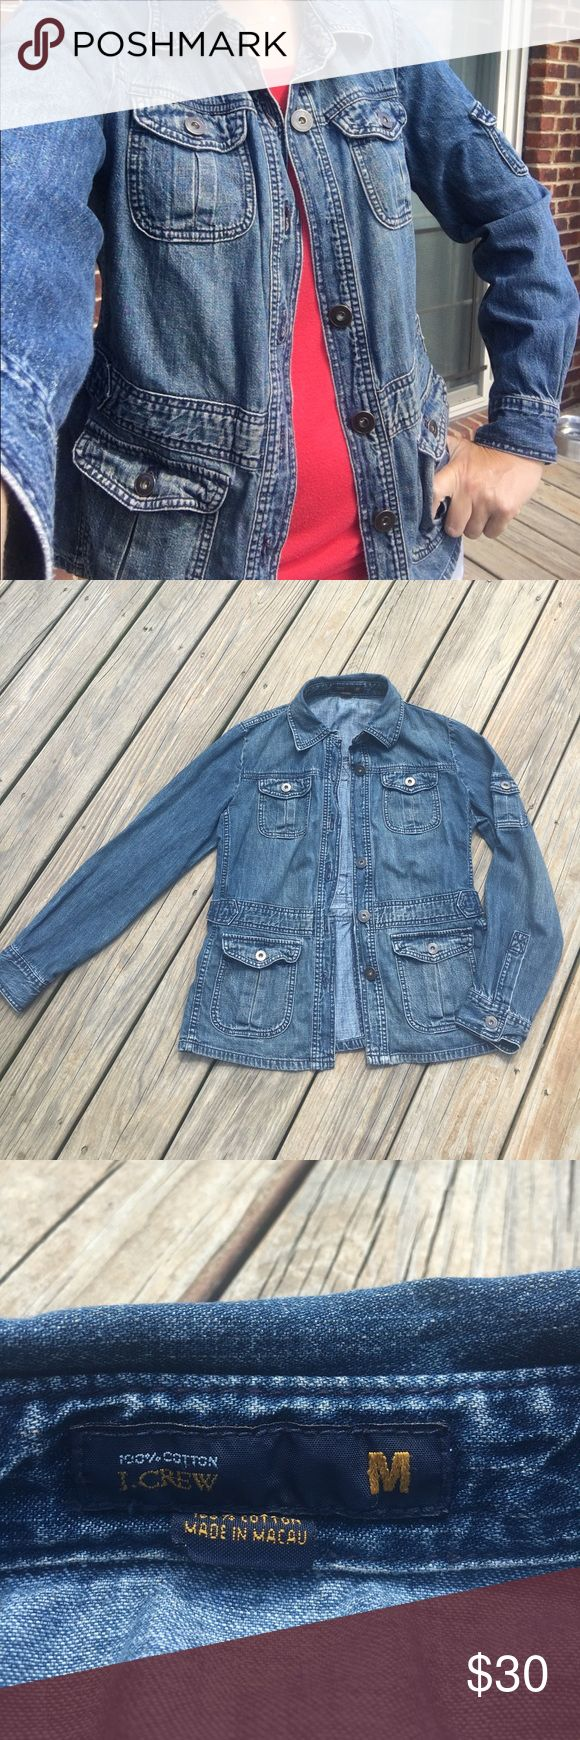 J. Crew (vintage) denim jacket This is a vintage J. Crew denim jacket.  The material is very soft, light-weight, and unstructured.  100% cotton.  *Please note: It is missing one button (third from top) as shown in picture.  I kept meaning to take to a dry cleaners to see about repair but never got around to.... Should not be too hard of a fix.  Has side adjusters to create a looser or more fitted look.  From smoke and pet free home. J. Crew Jackets & Coats Jean Jackets